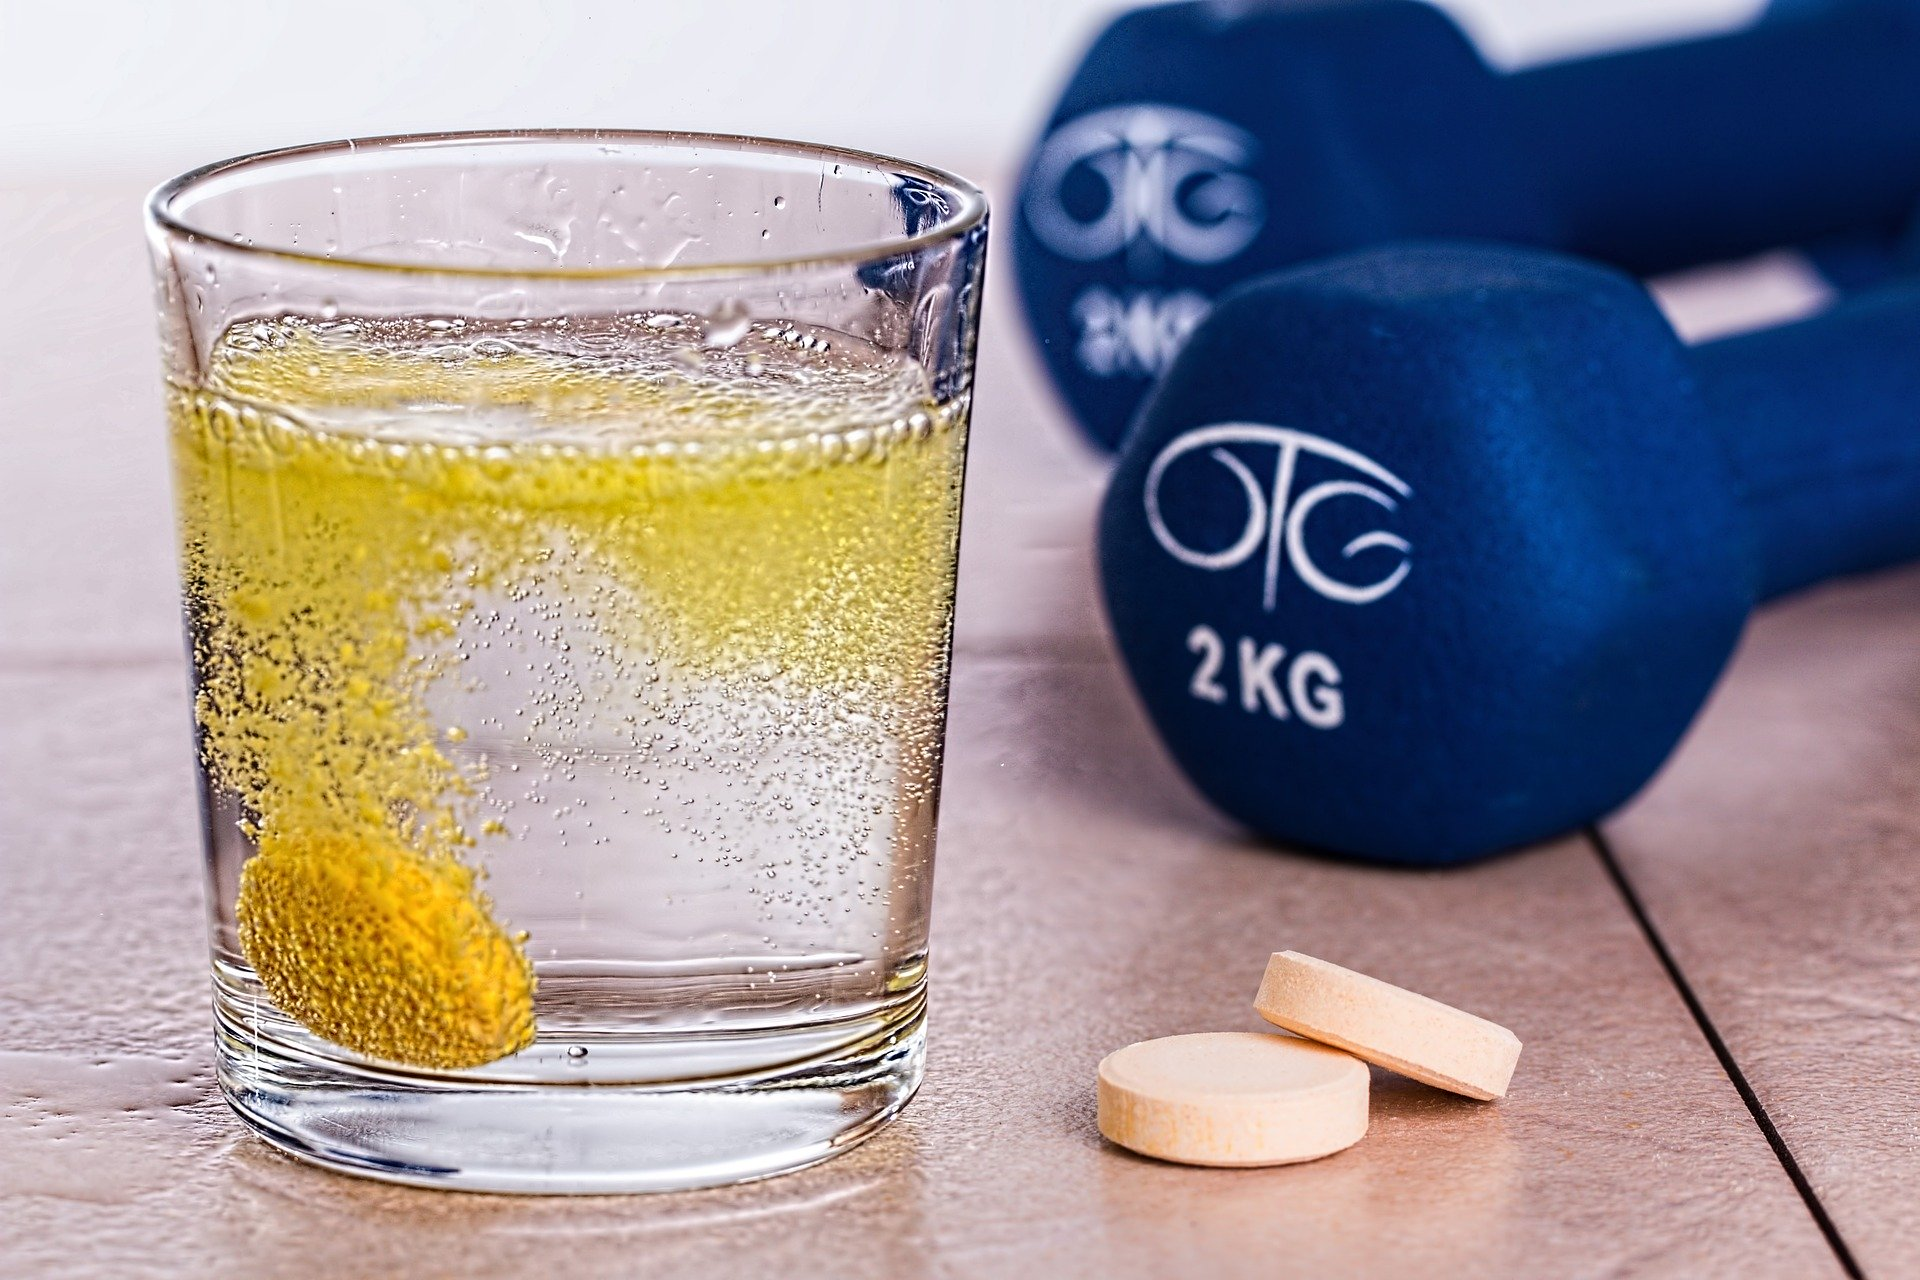 Supplements aimed at weight loss oftern fall short of their promises.